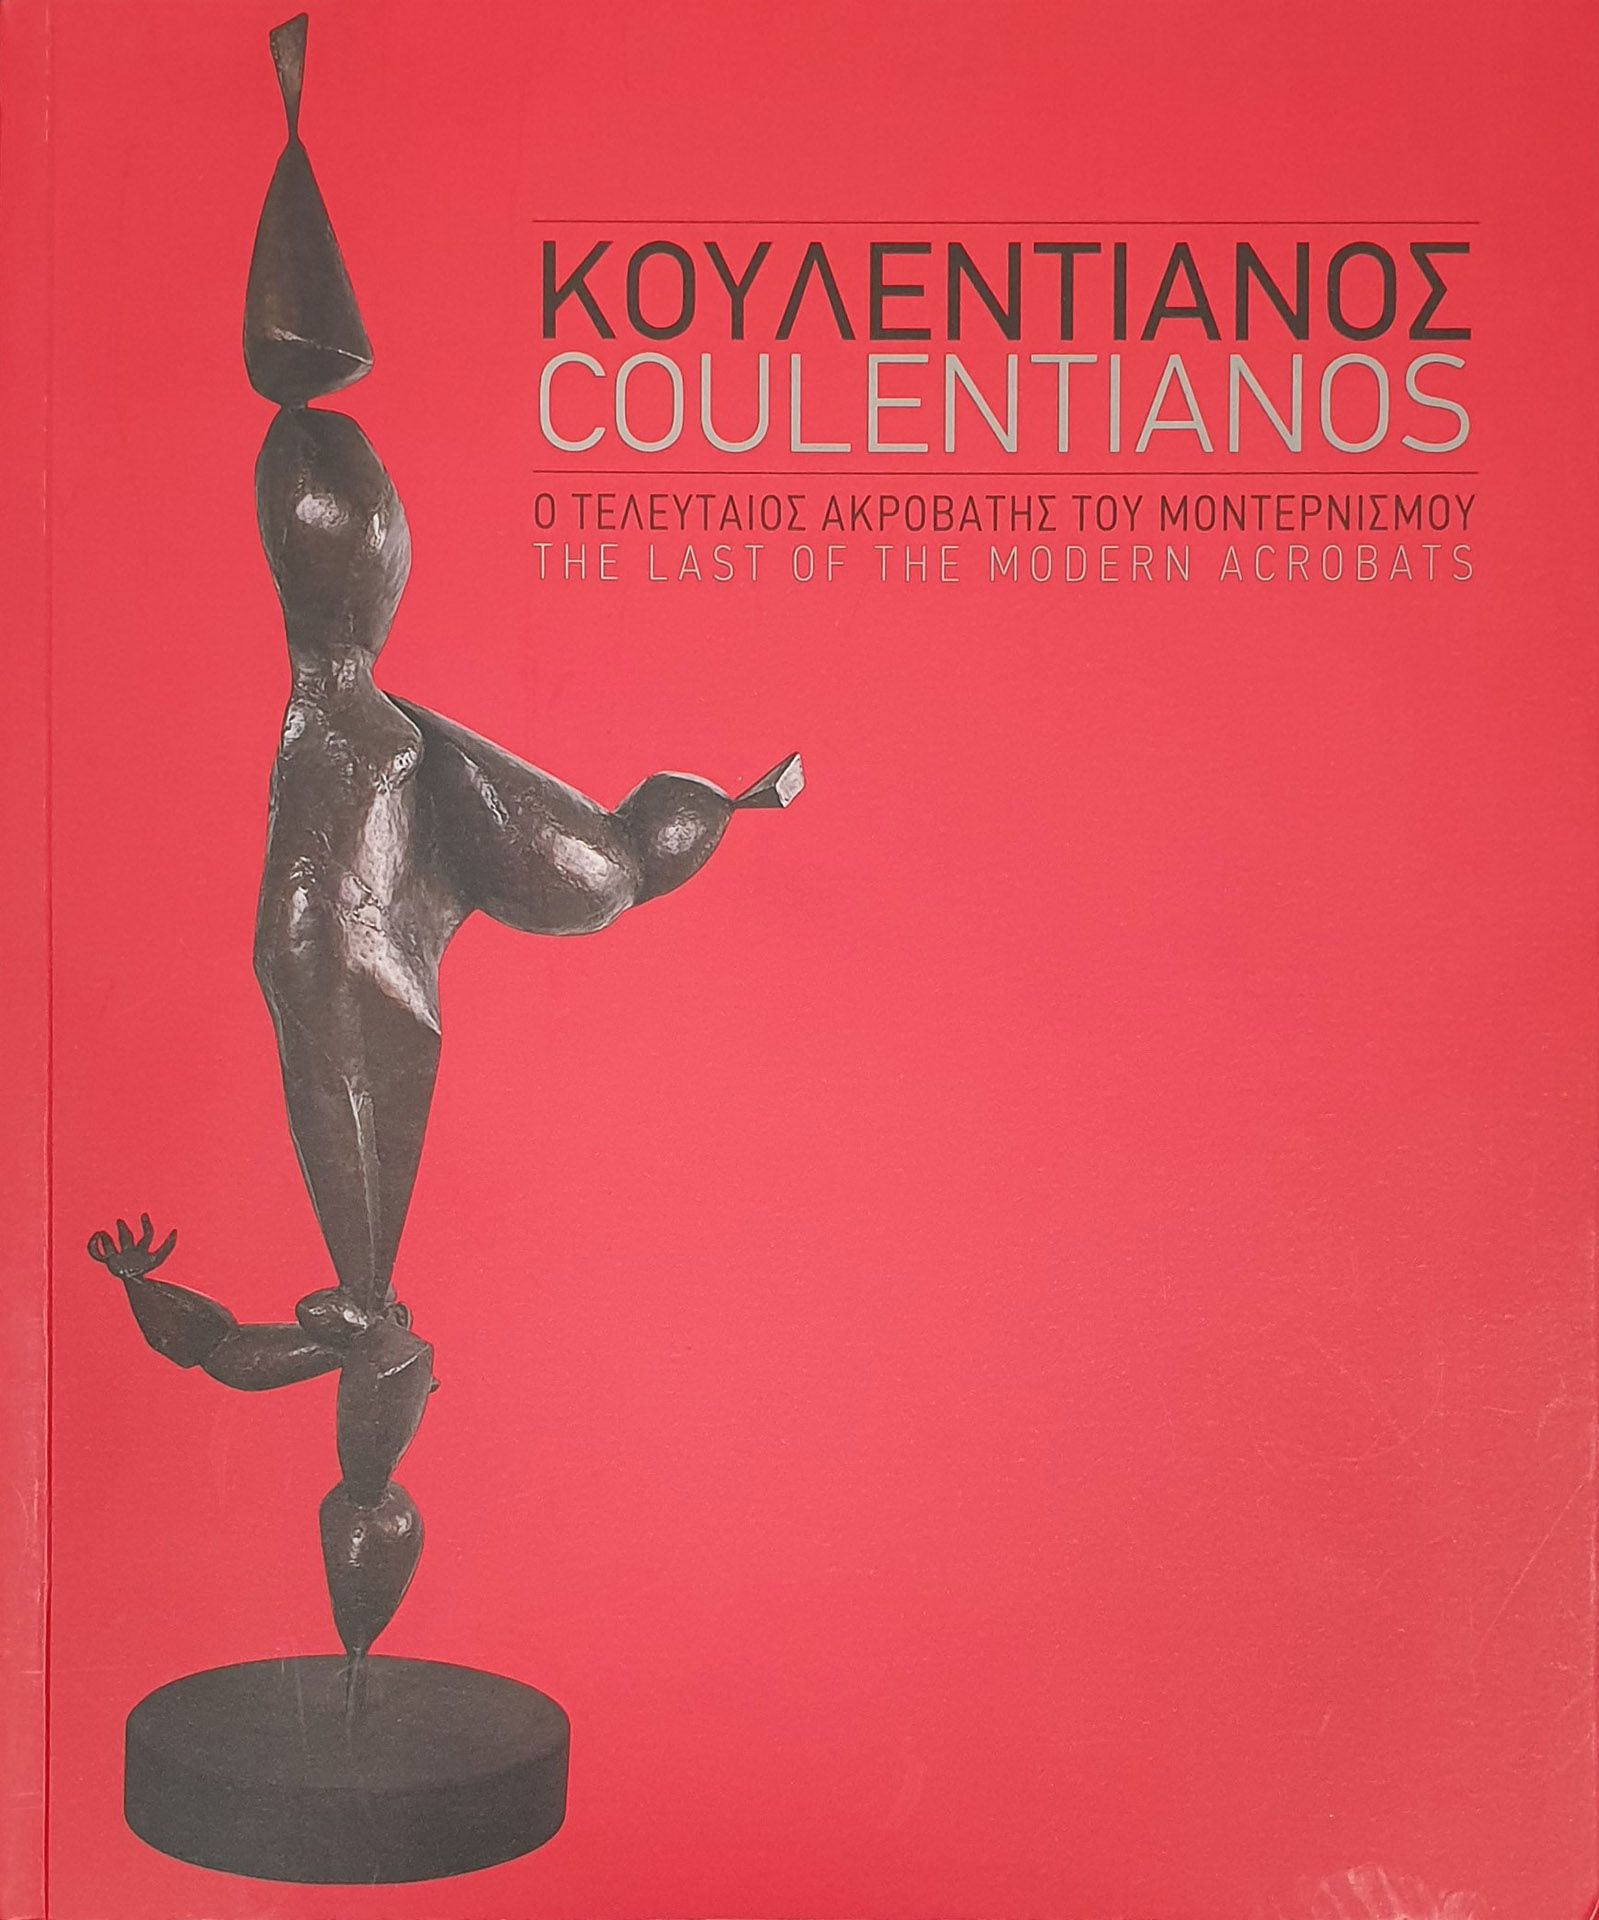 1. COULENTIANOS - THE LAST OF MODERN ACROBATS - ATHENS[2012]